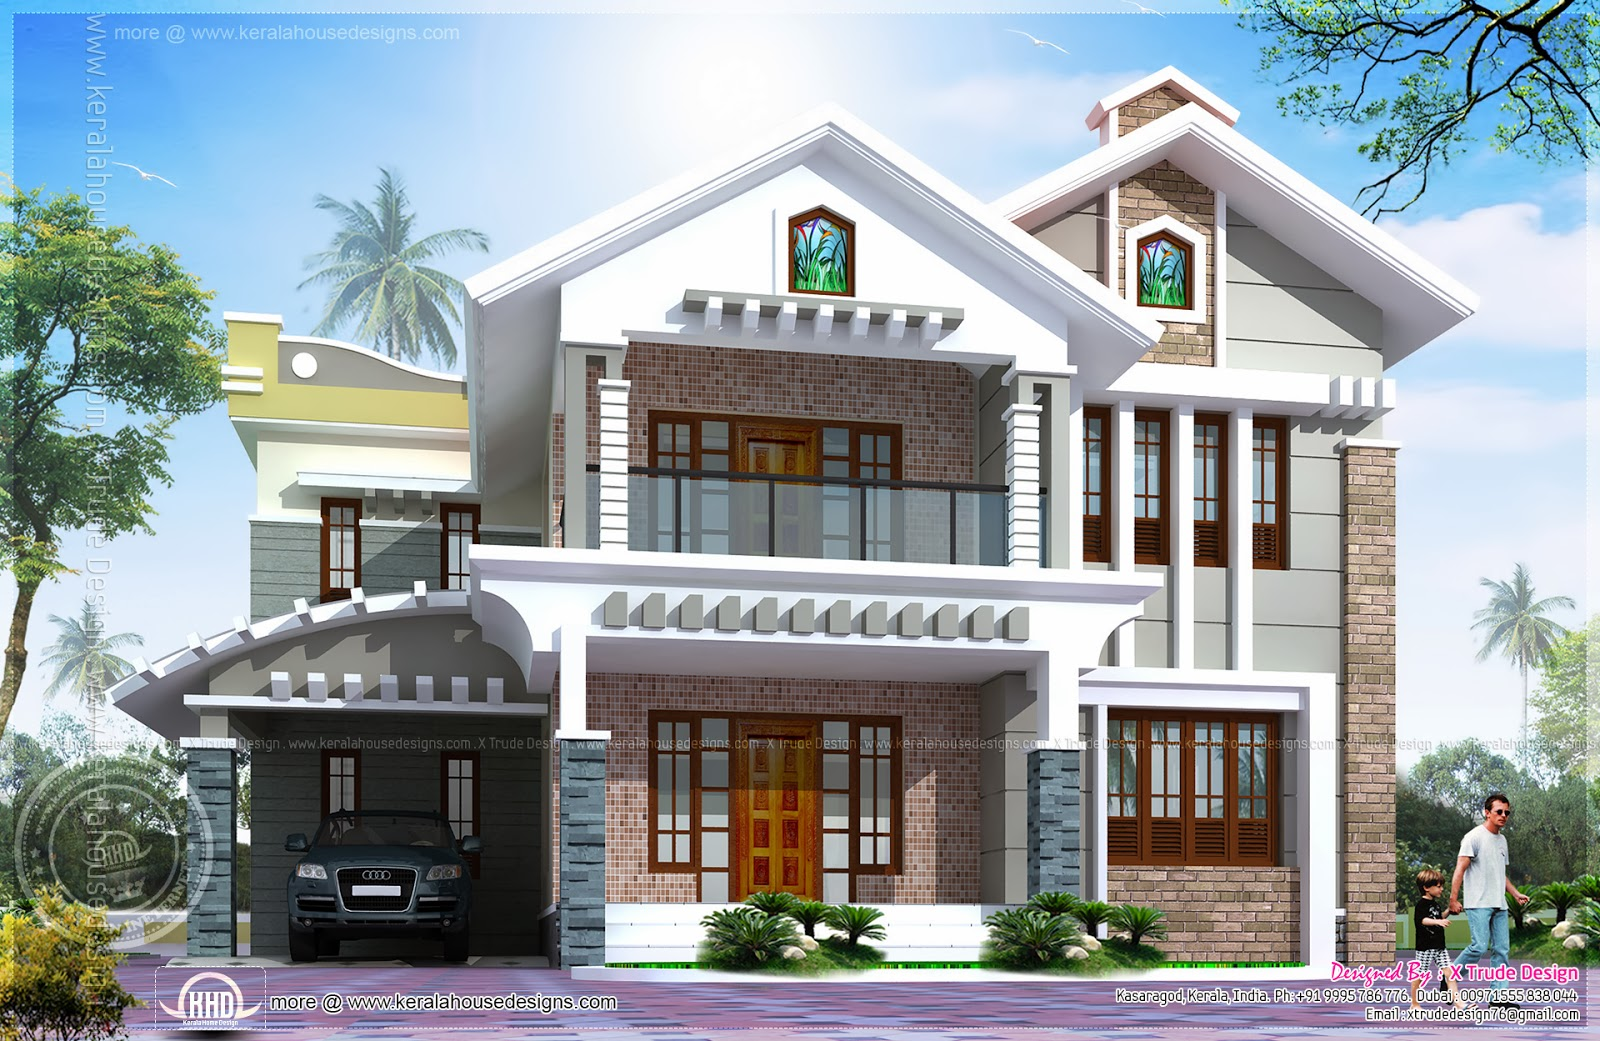 Luxury villa exterior designs the image for Exterieur villa design